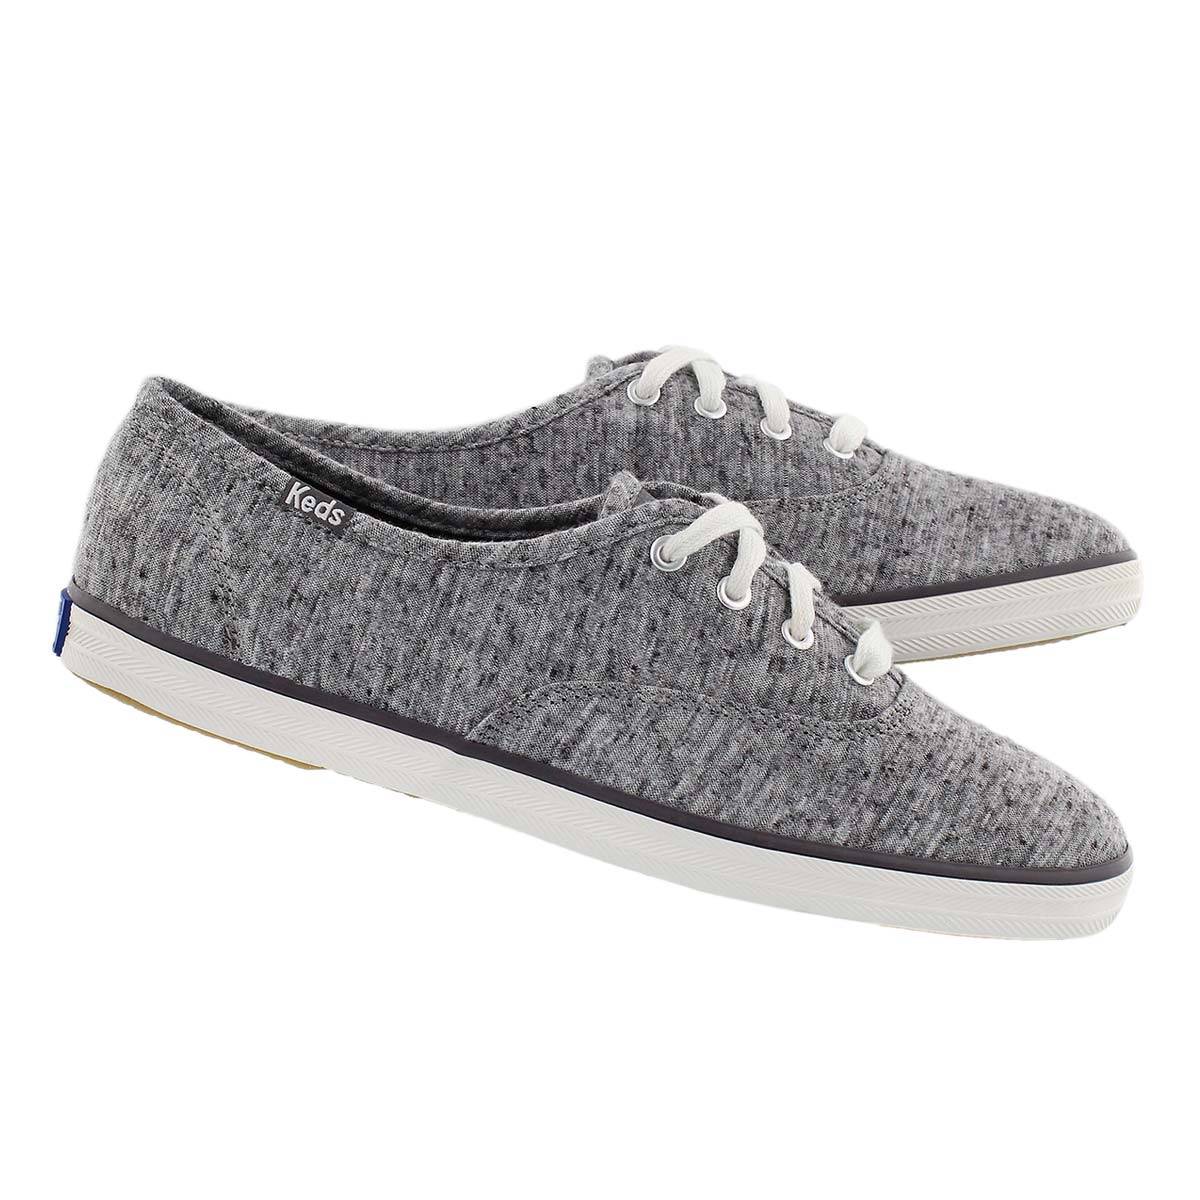 Lds Champion Jersey charcoal sneaker